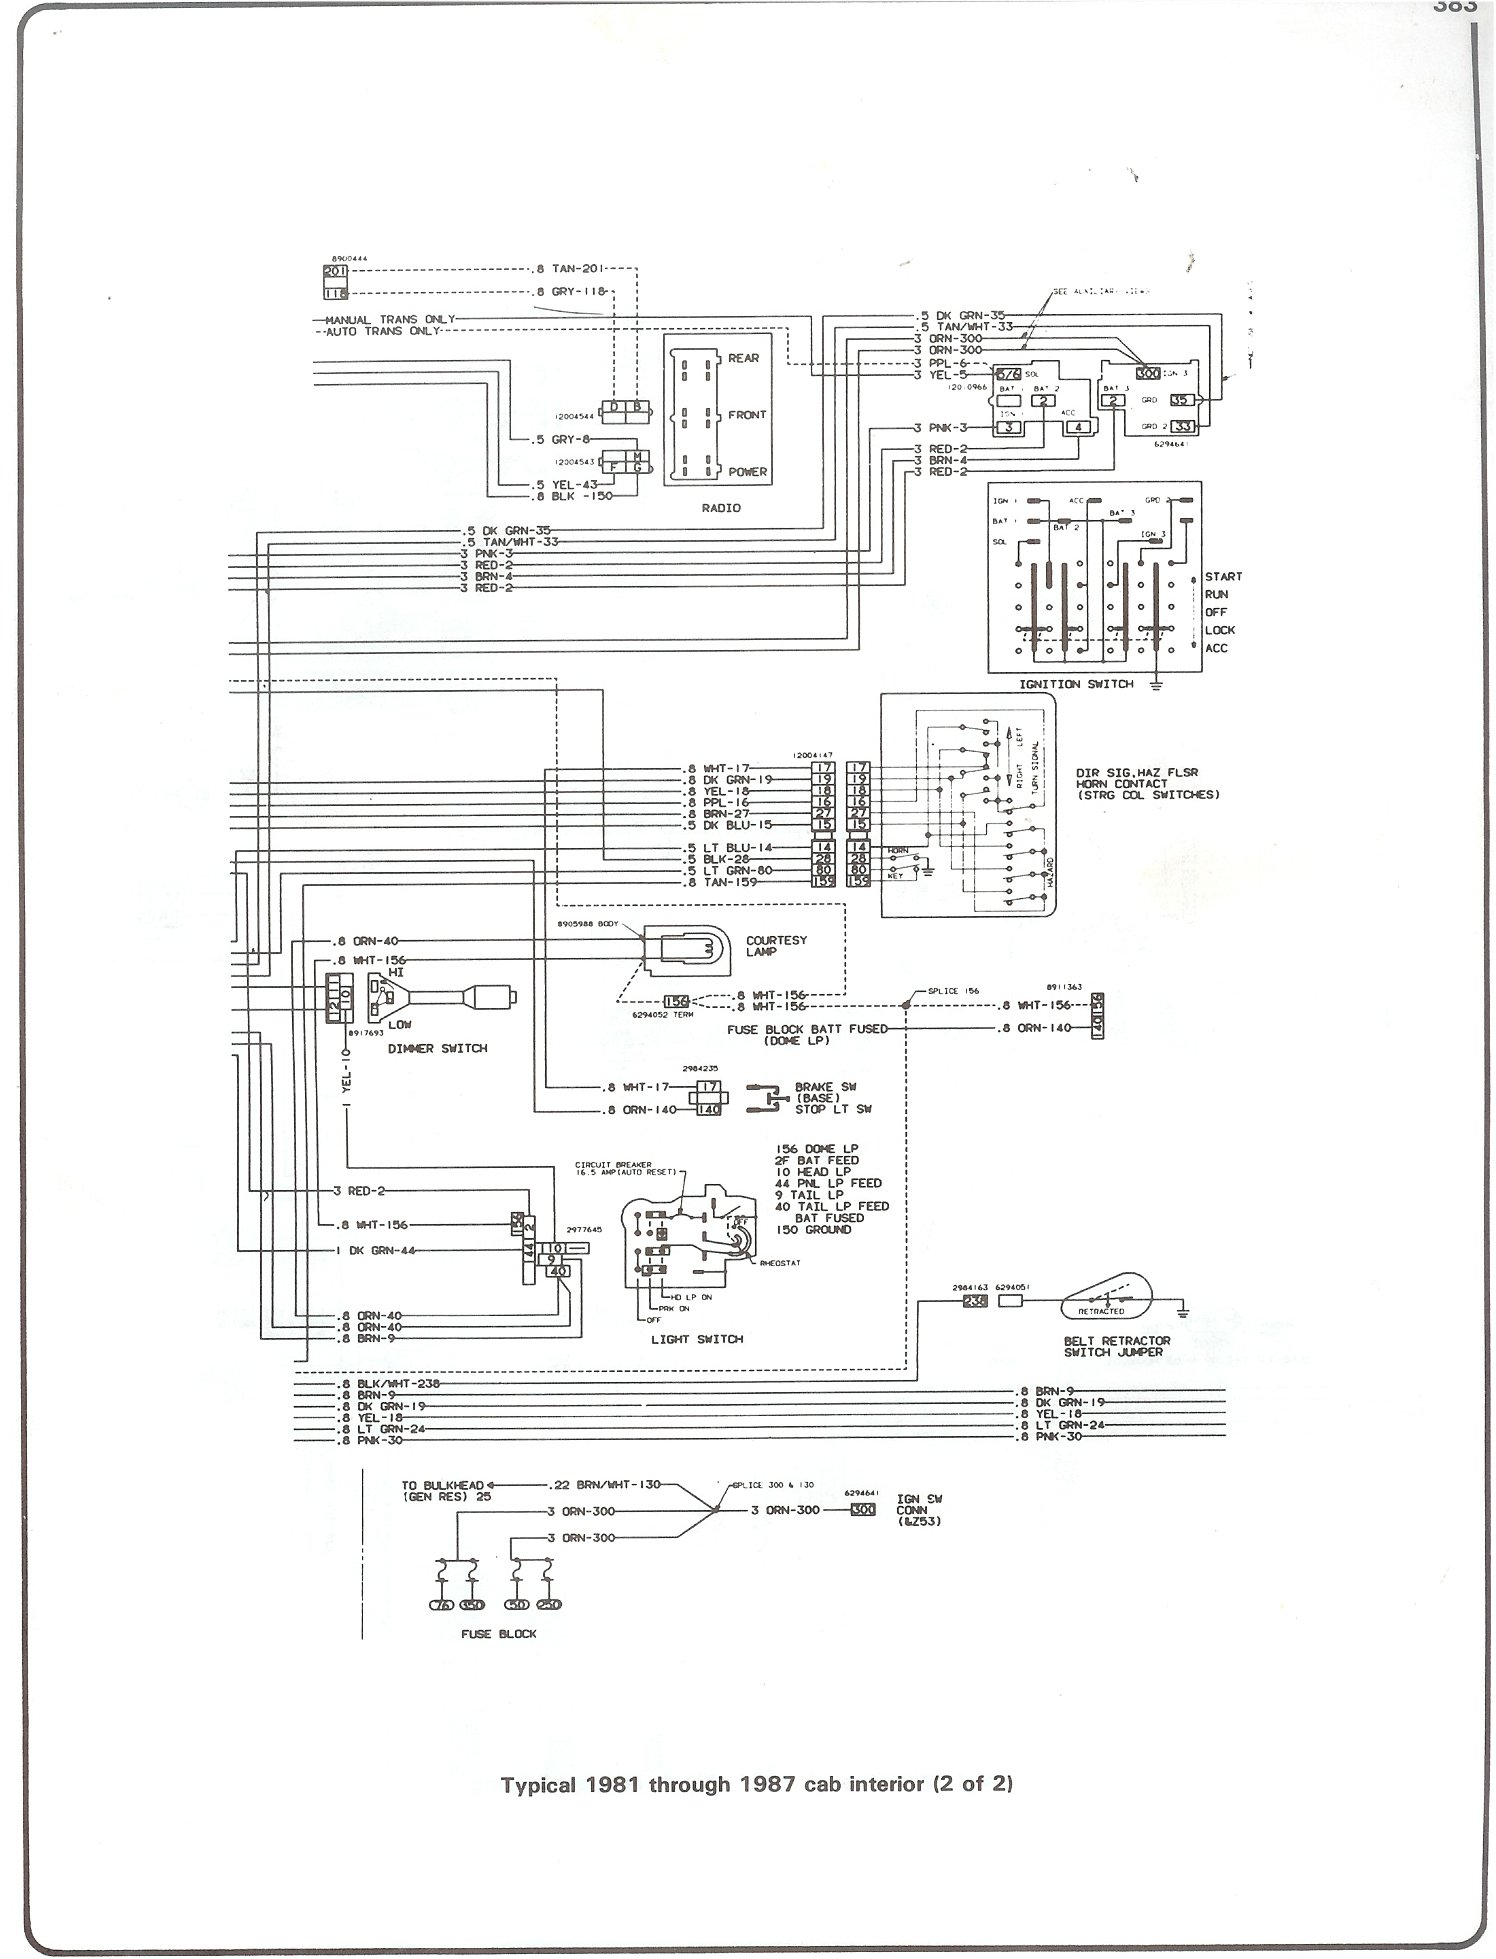 92 Gmc Safari Fuse Box Diagram Wiring Library 1990 Complete 73 87 Diagrams Rh Forum 87chevytrucks Com Envoy Truck